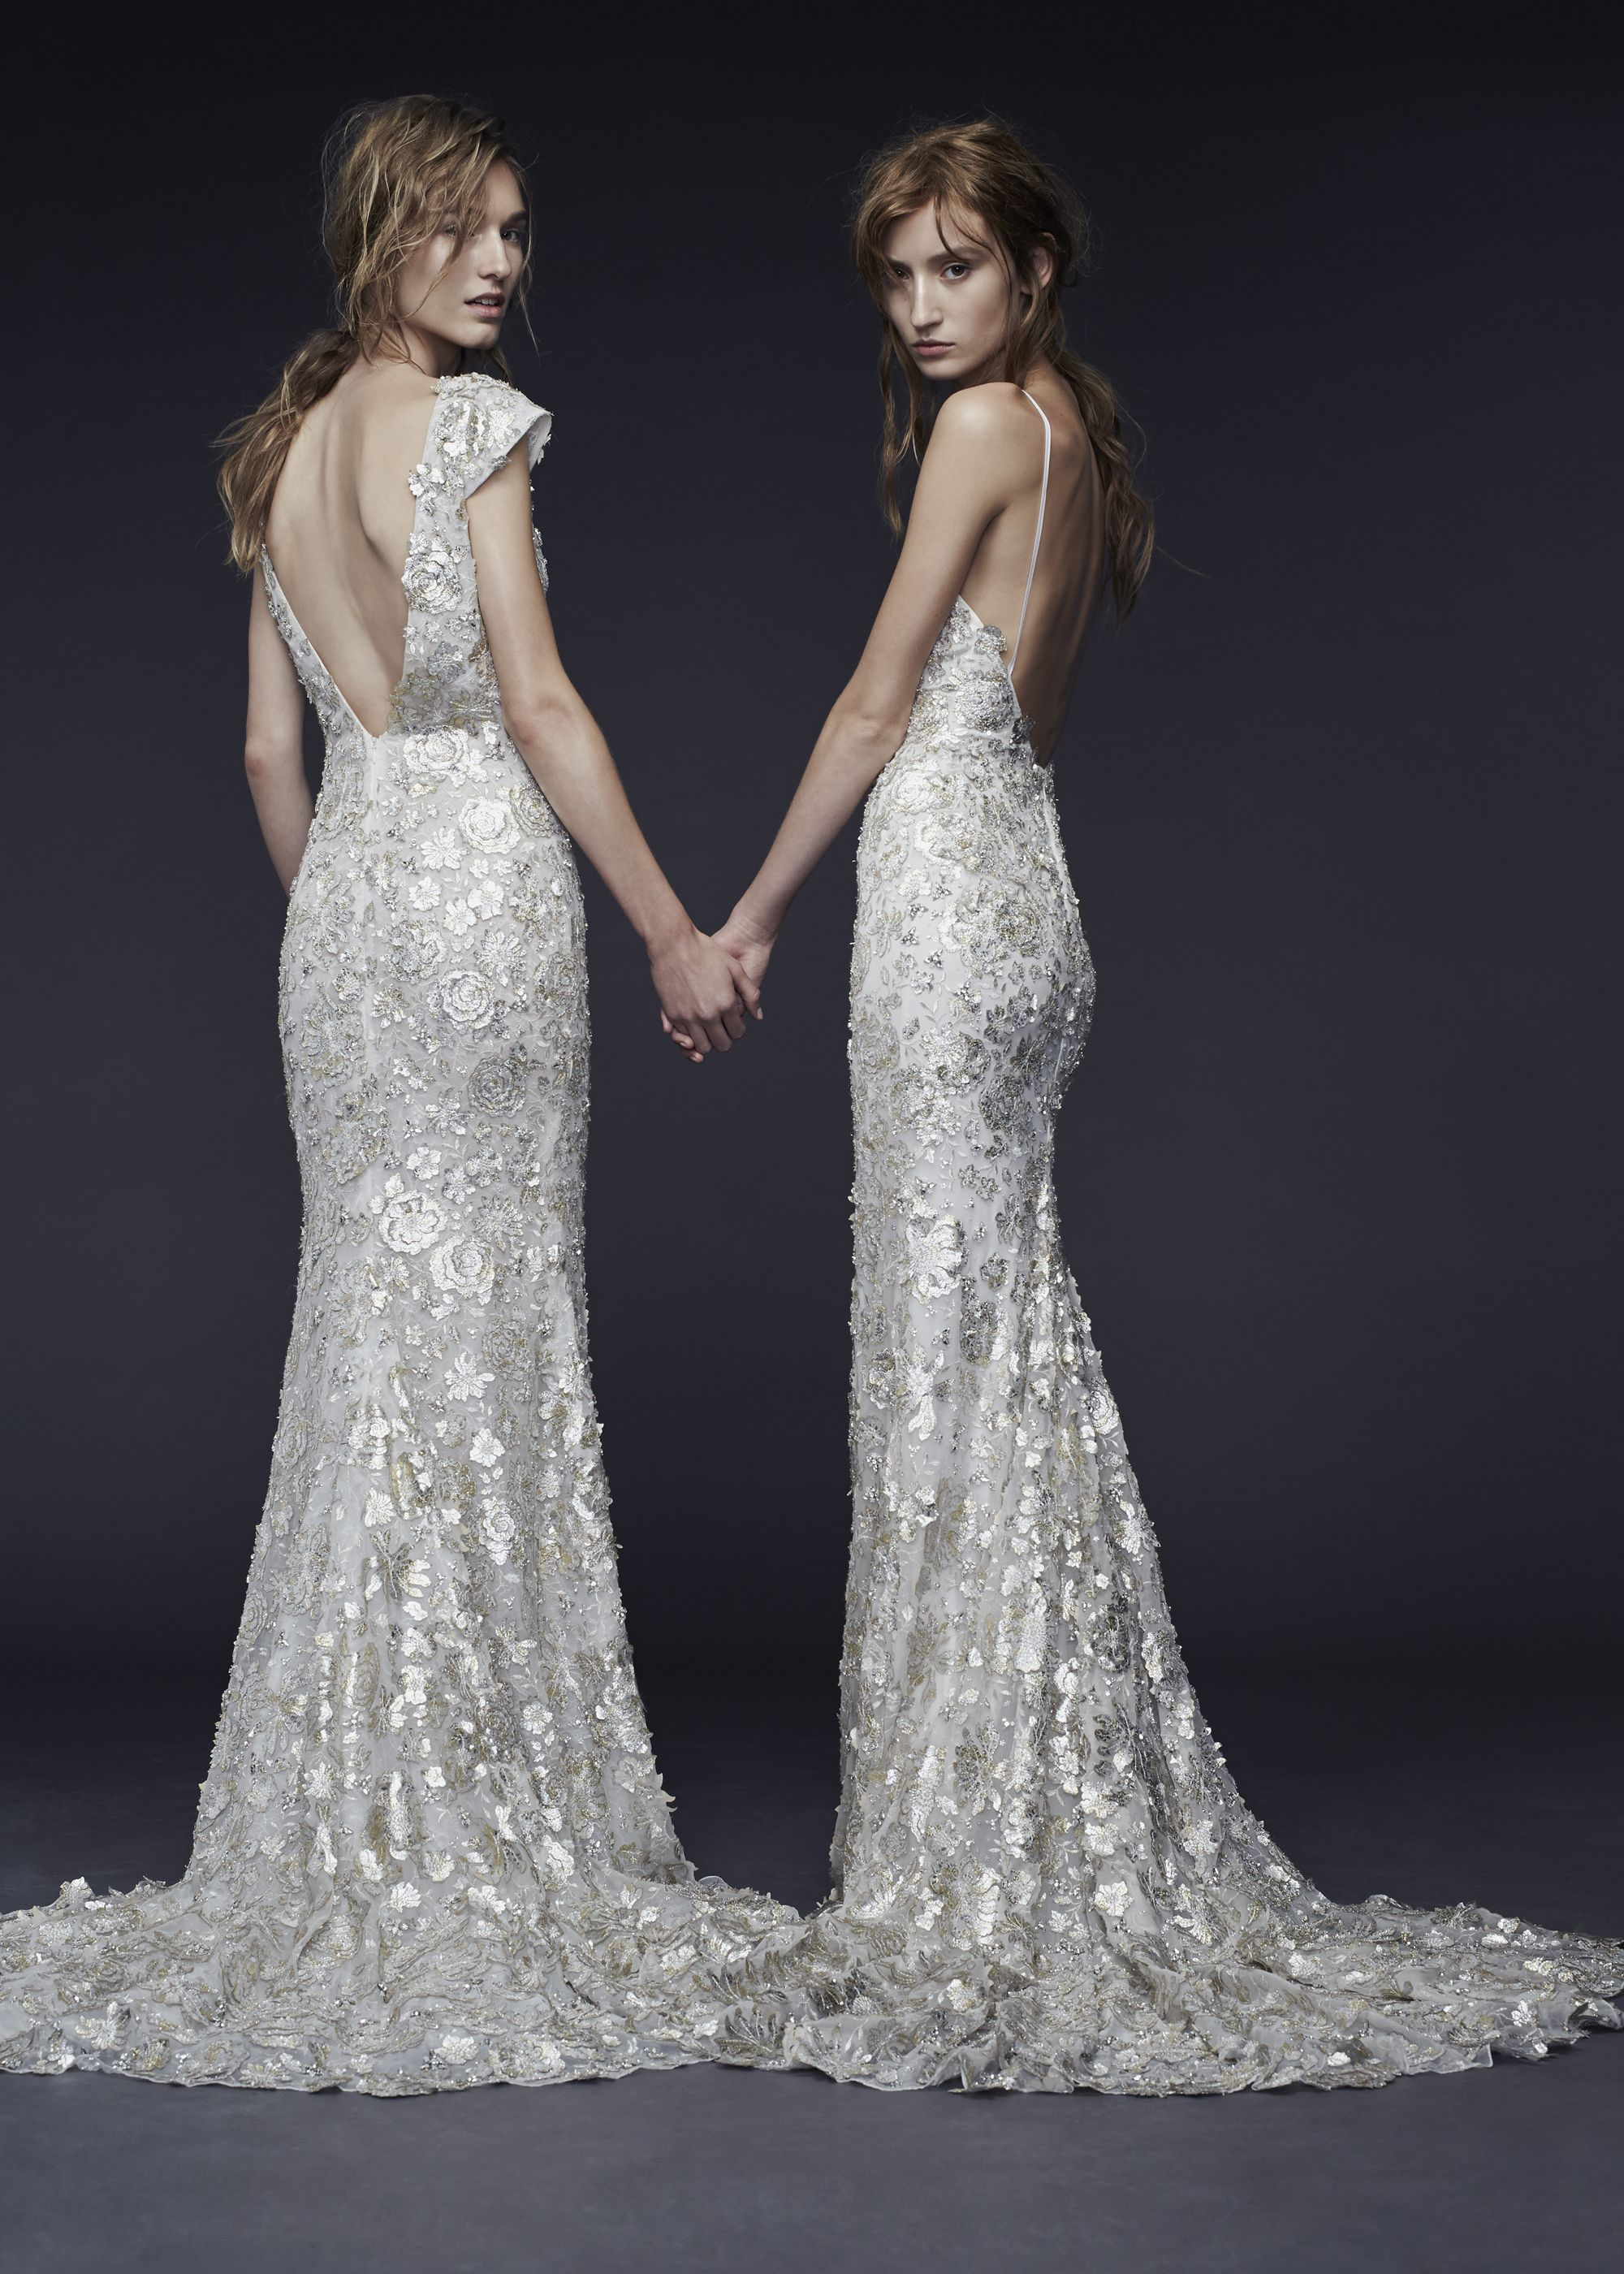 The 12 Best Wedding Dresses From The Fall 2015 Bridal Collections Vera Wang Wedding Dress 2015 Non White Wedding Dresses Wedding Dresses Vera Wang